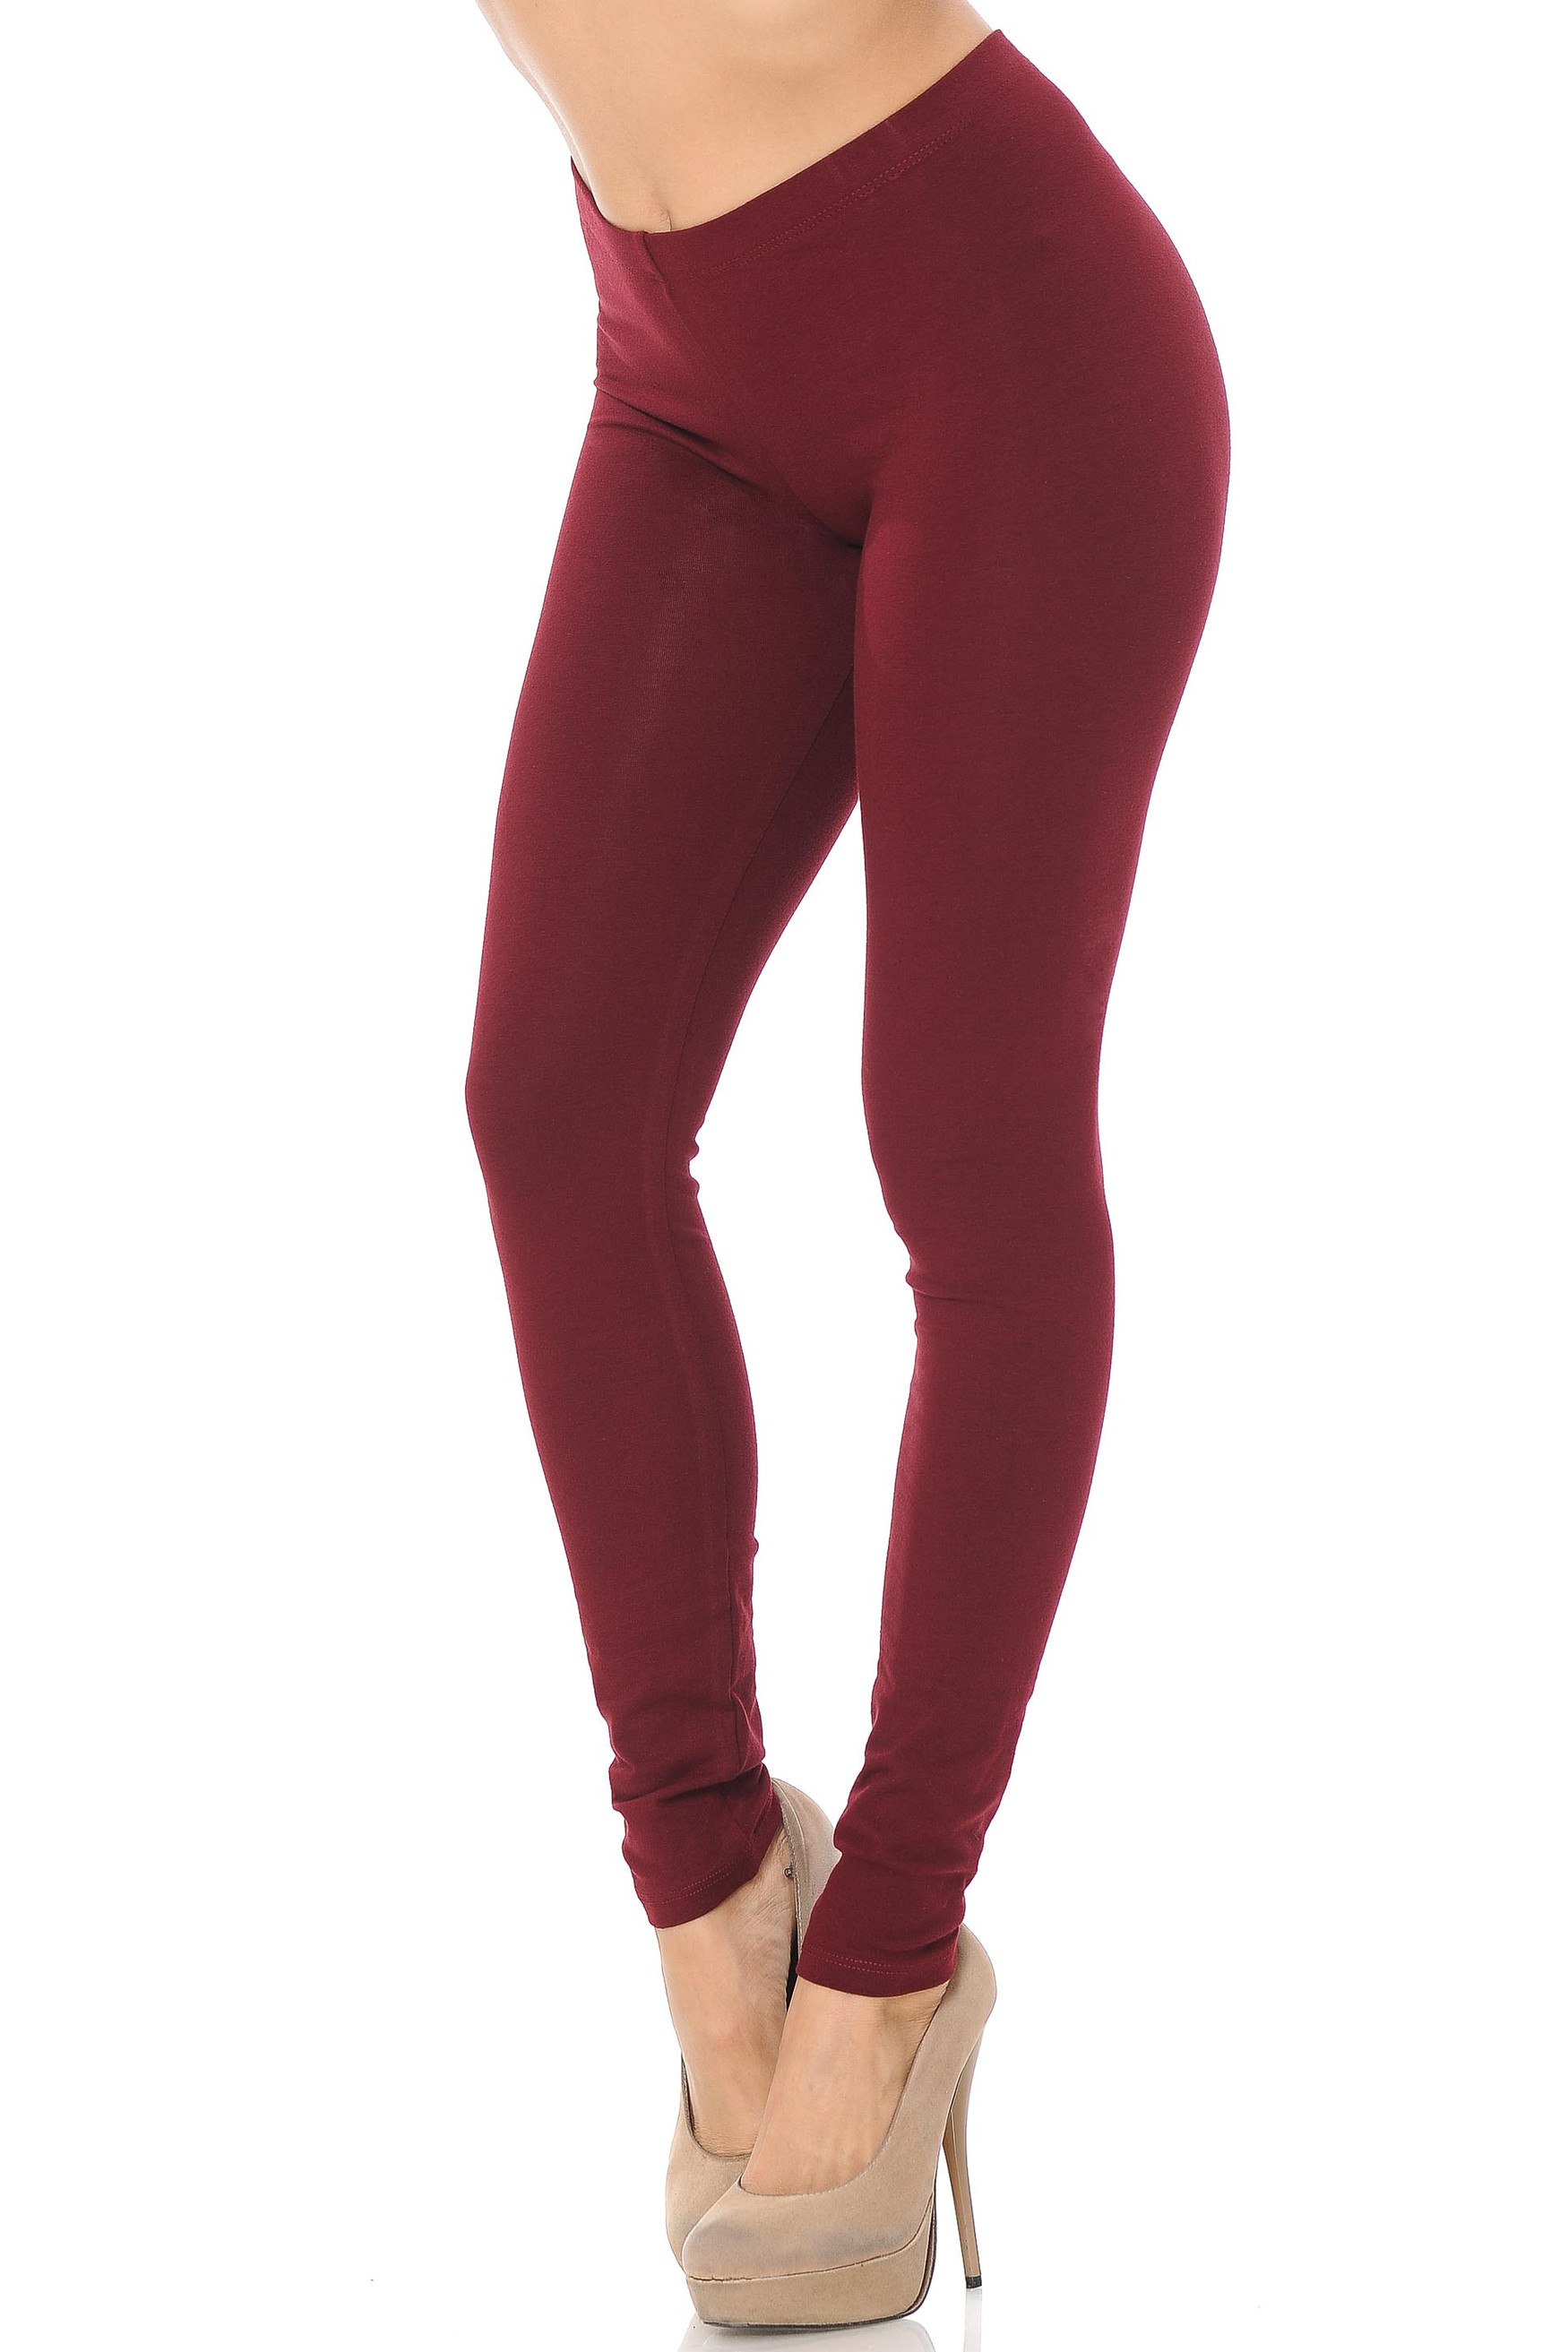 45 degree angle image of female model wearing a burgundy pair of made in the USA cotton leggings showing  a just below the belly button rise and full length going to the ankles.